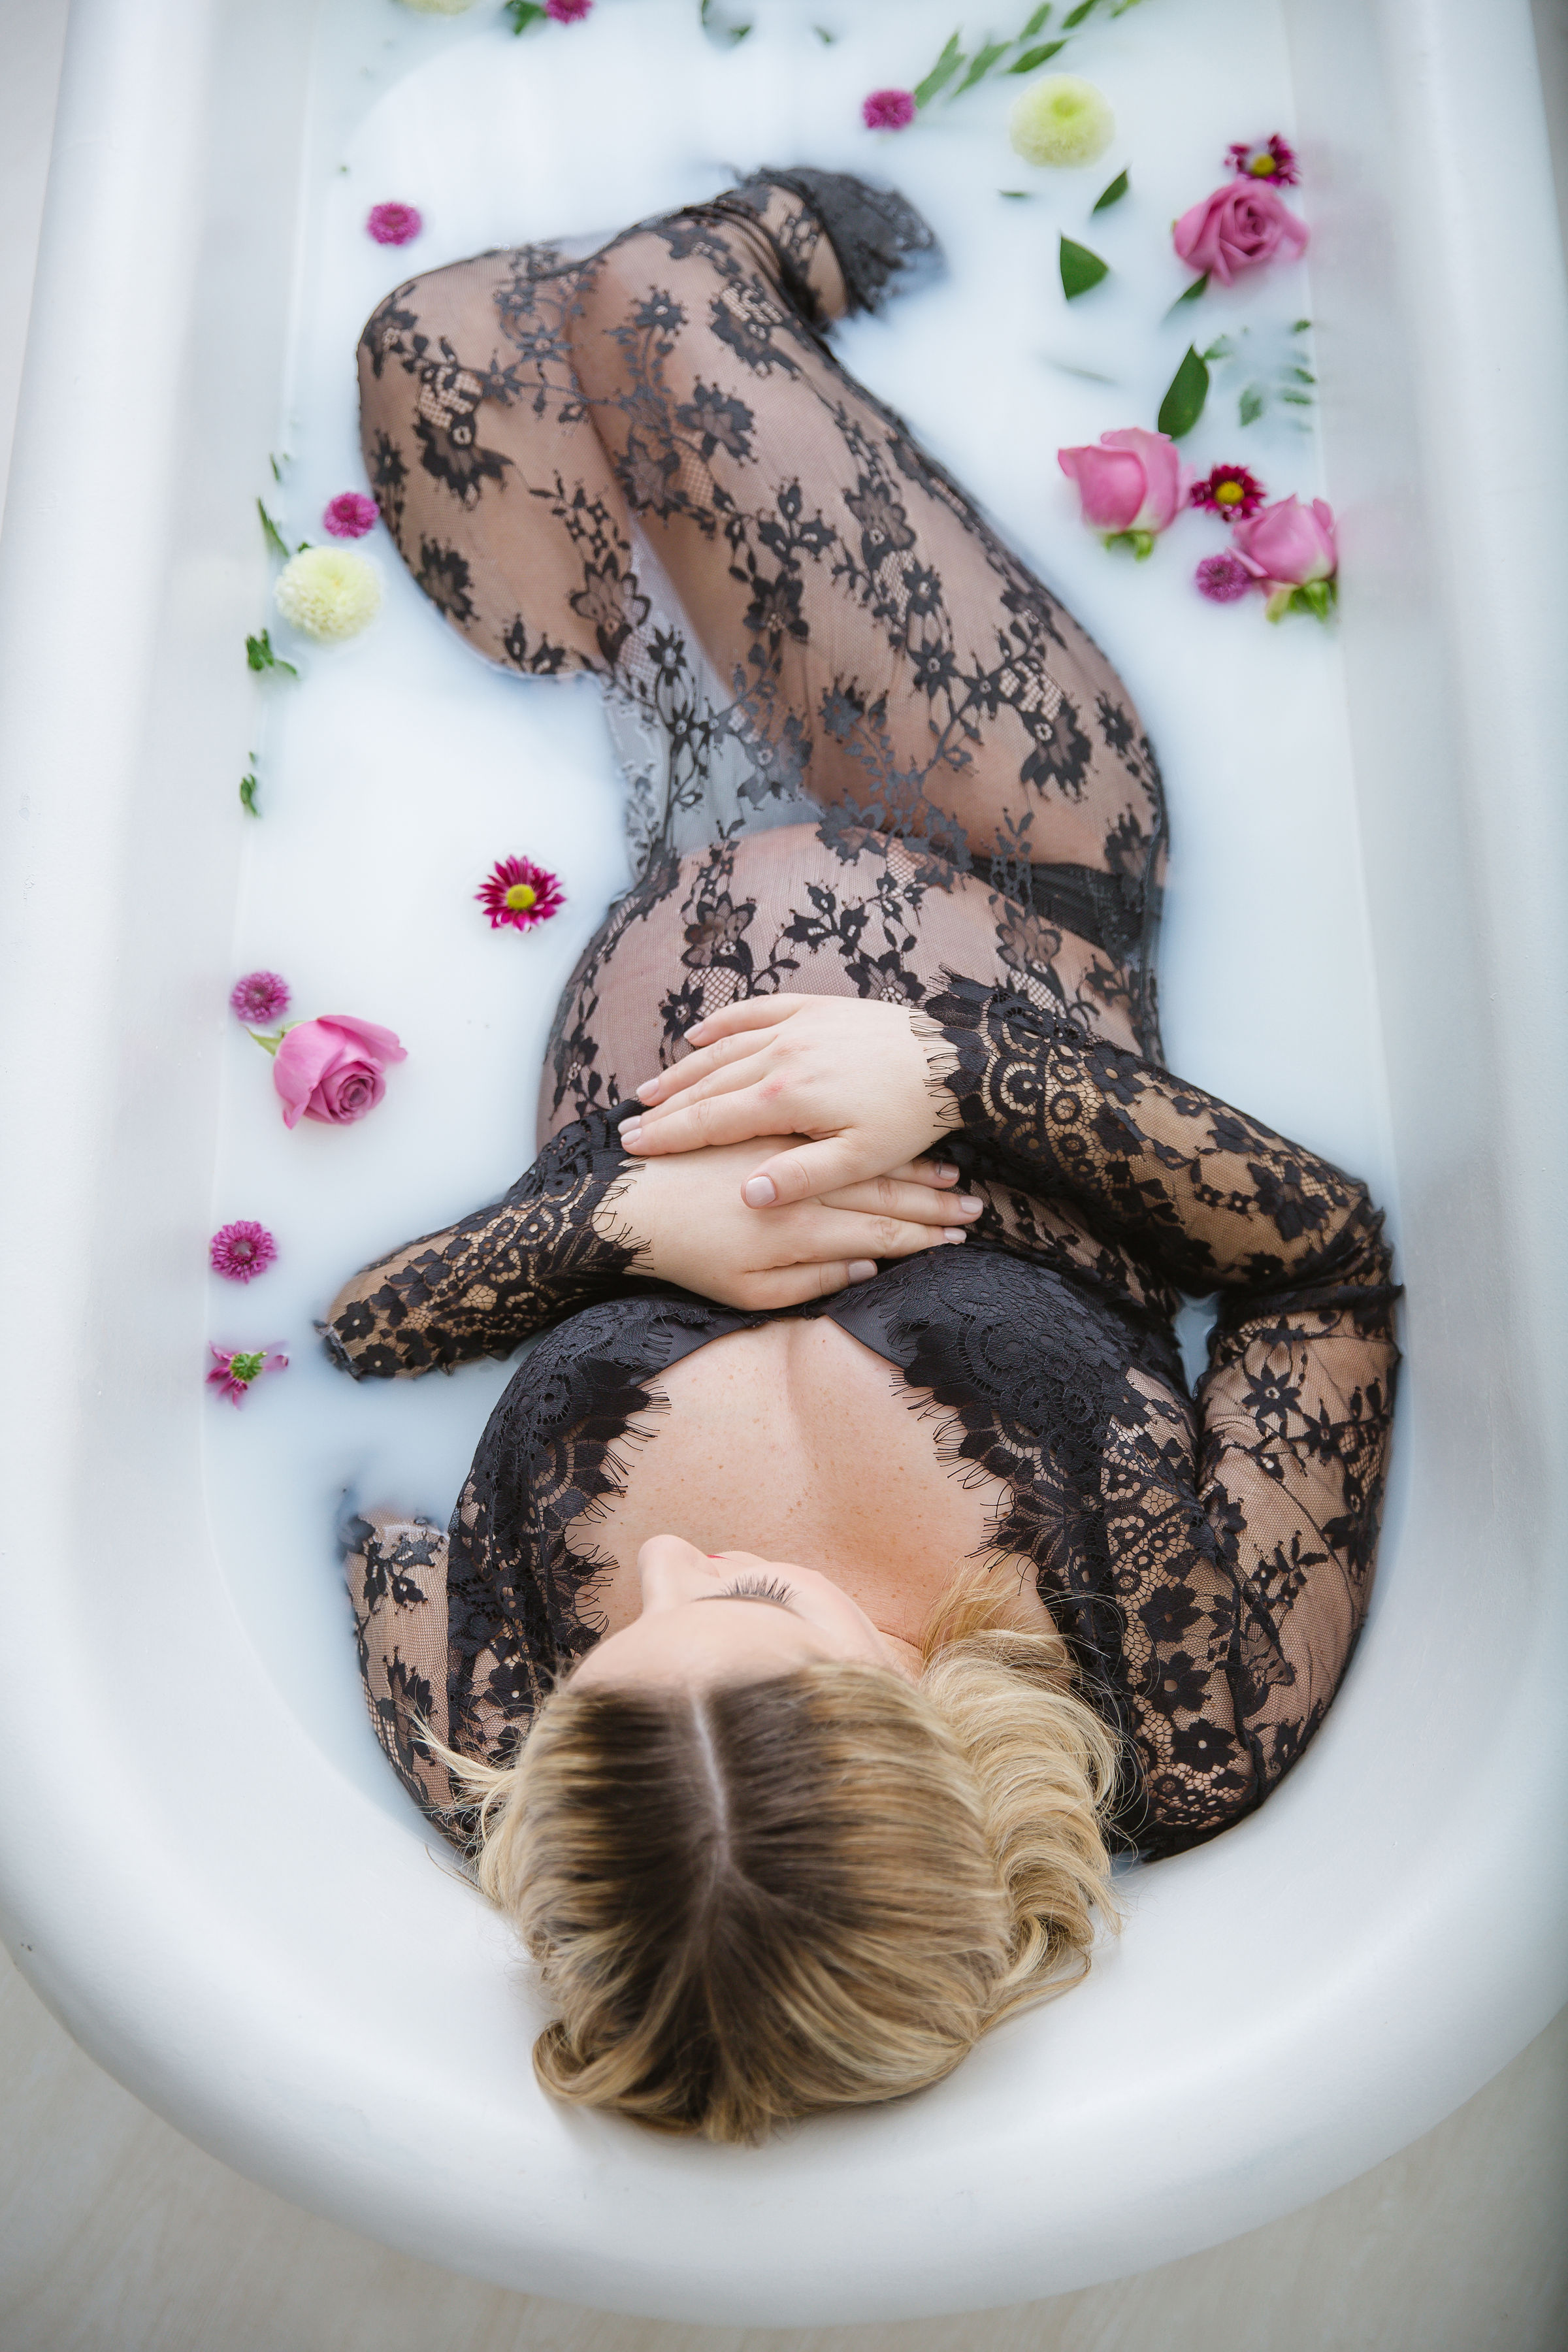 milk-bath-in-studio-maternity-session-burlington-new-jerset